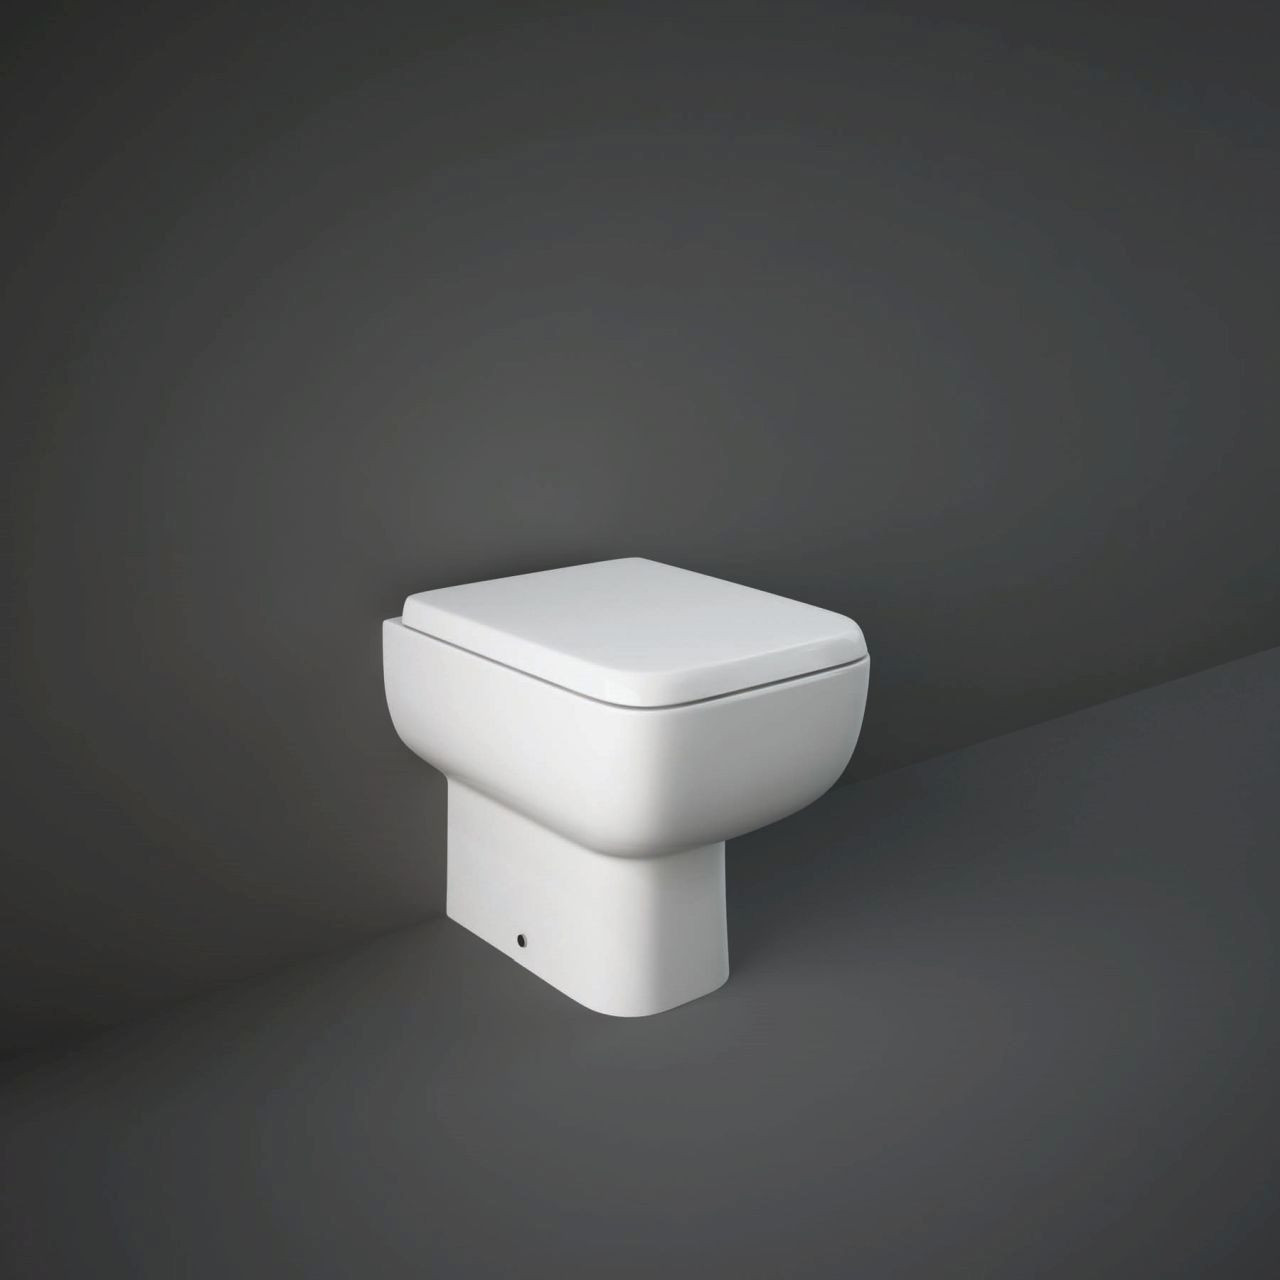 RAK Series 600 Back to Wall Toilet Pan with Slimline Wrap Over Soft Close Seat - S600BTWPAN/014